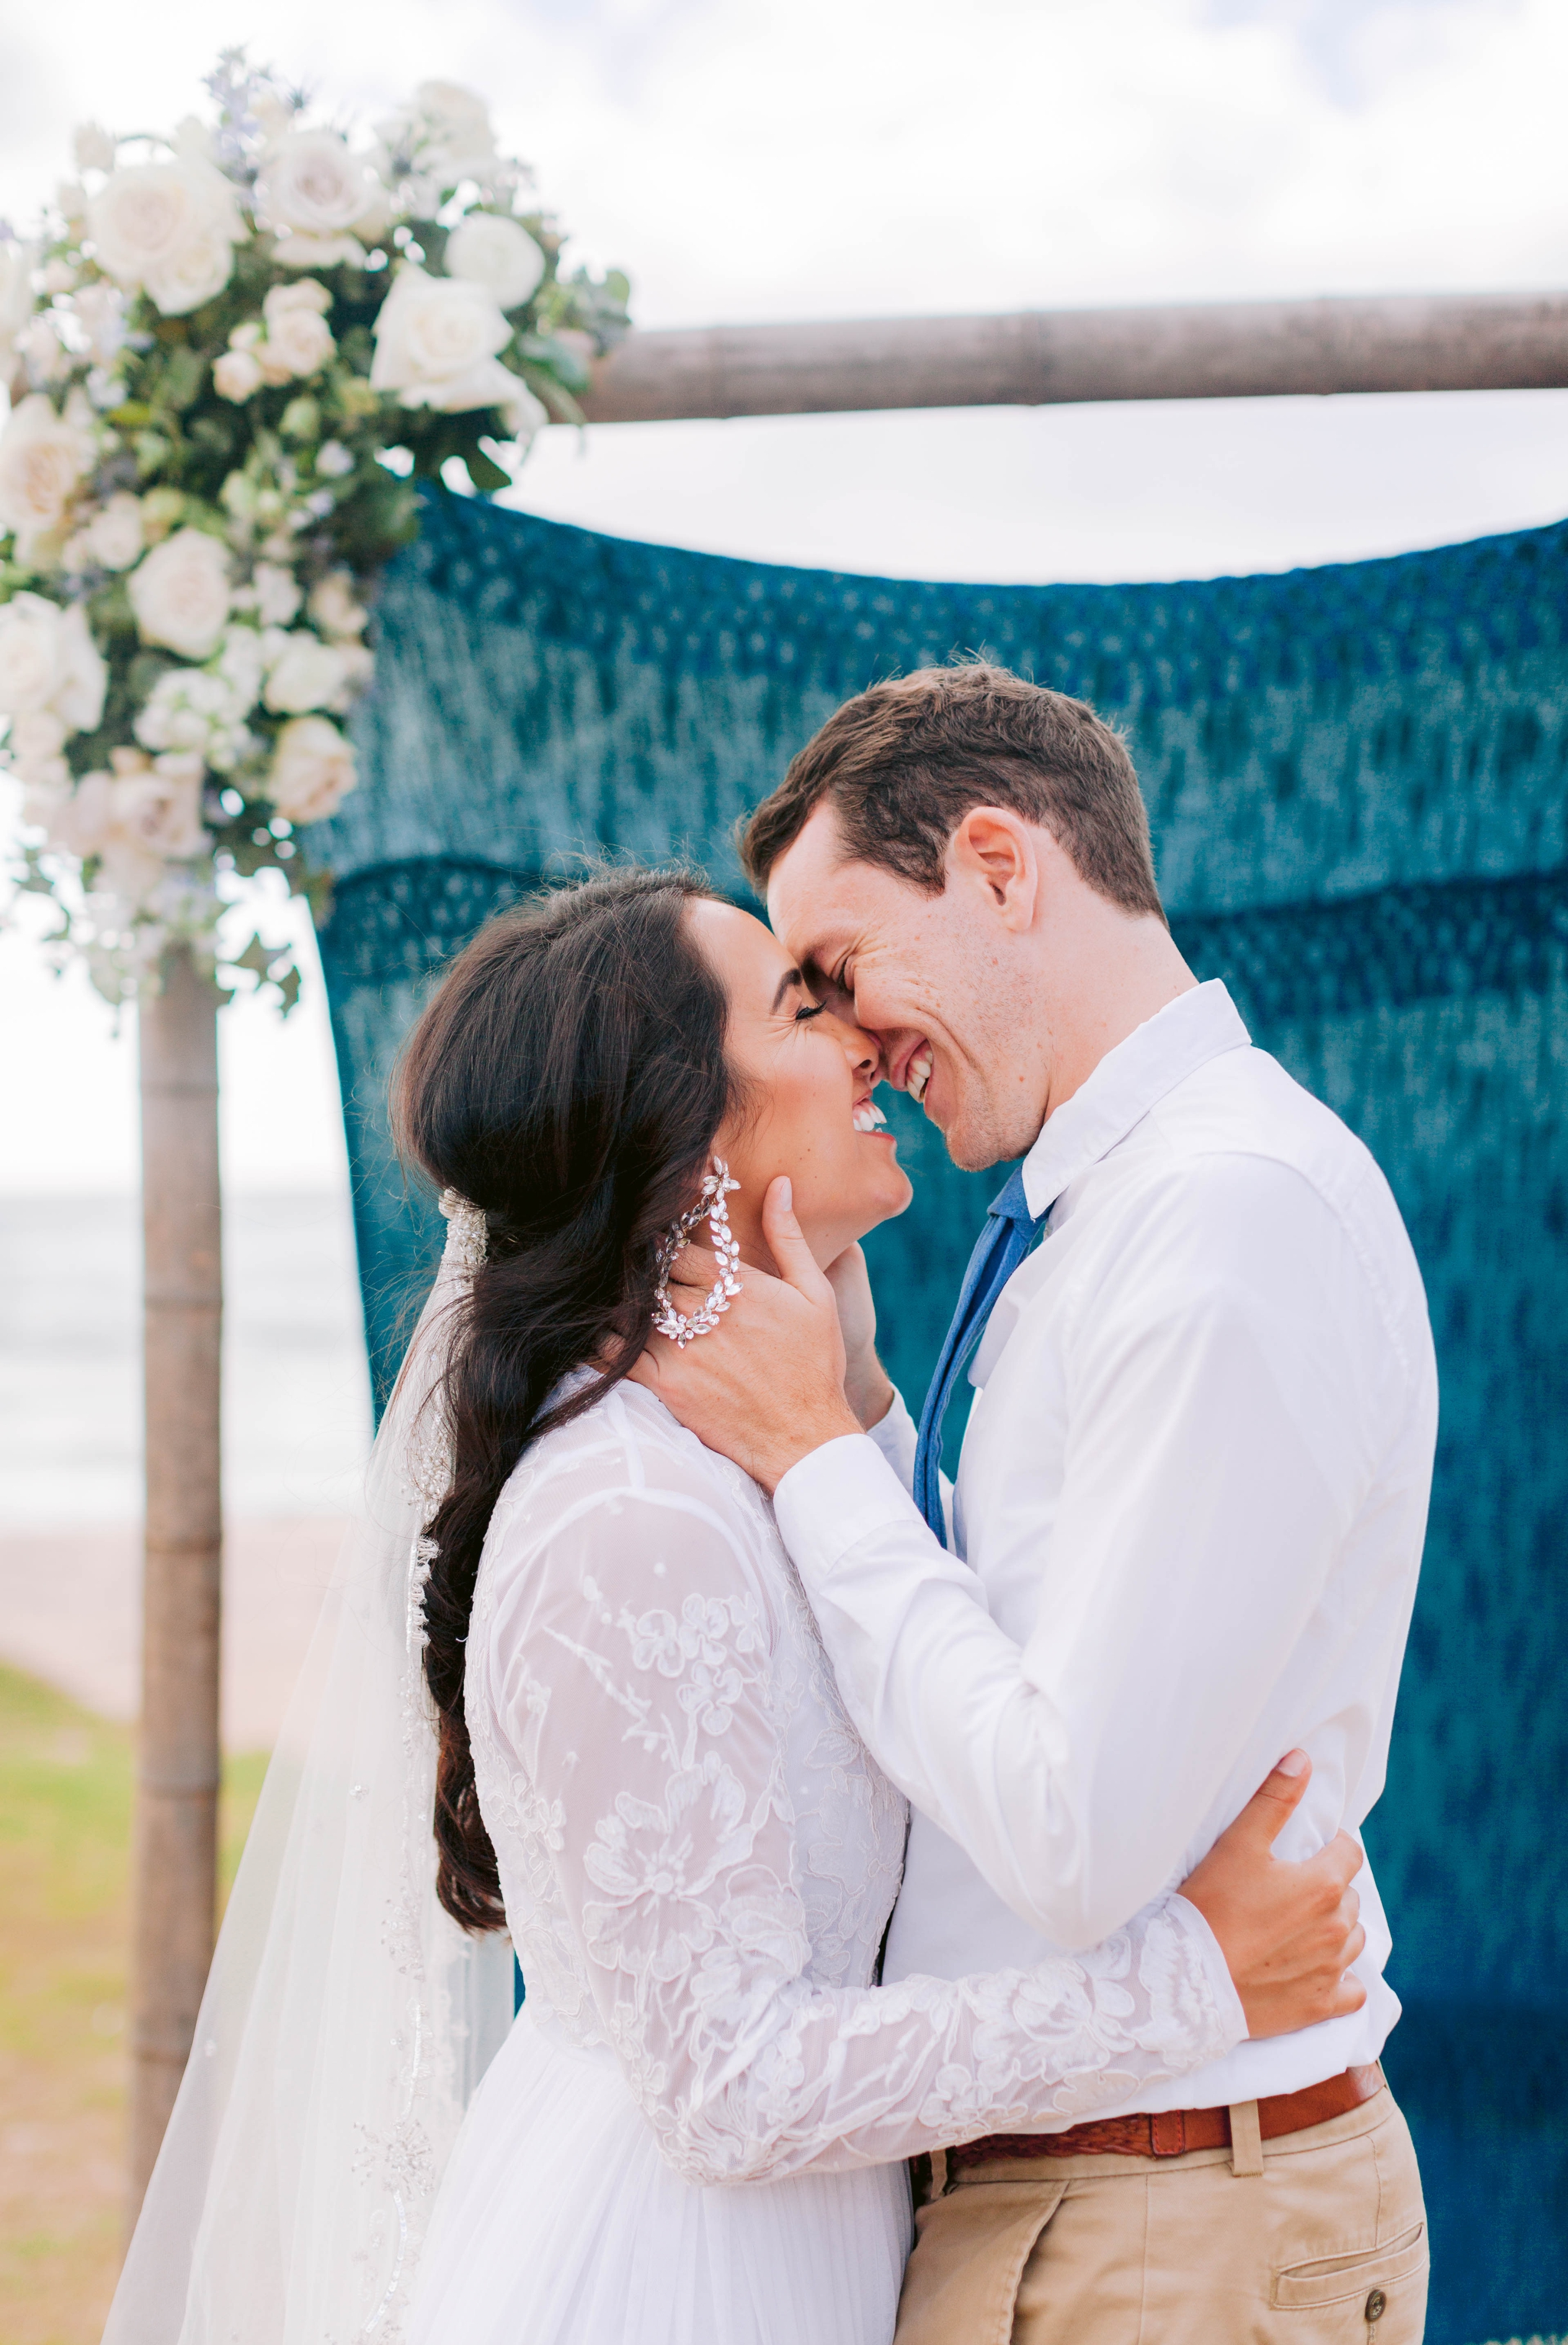 Bride + Groom kissing in front of a ceremony arch decorated with fabric and flowers - Ana + Elijah - Wedding at Loulu Palm in Haleiwa, HI - Oahu Hawaii Wedding Photographer